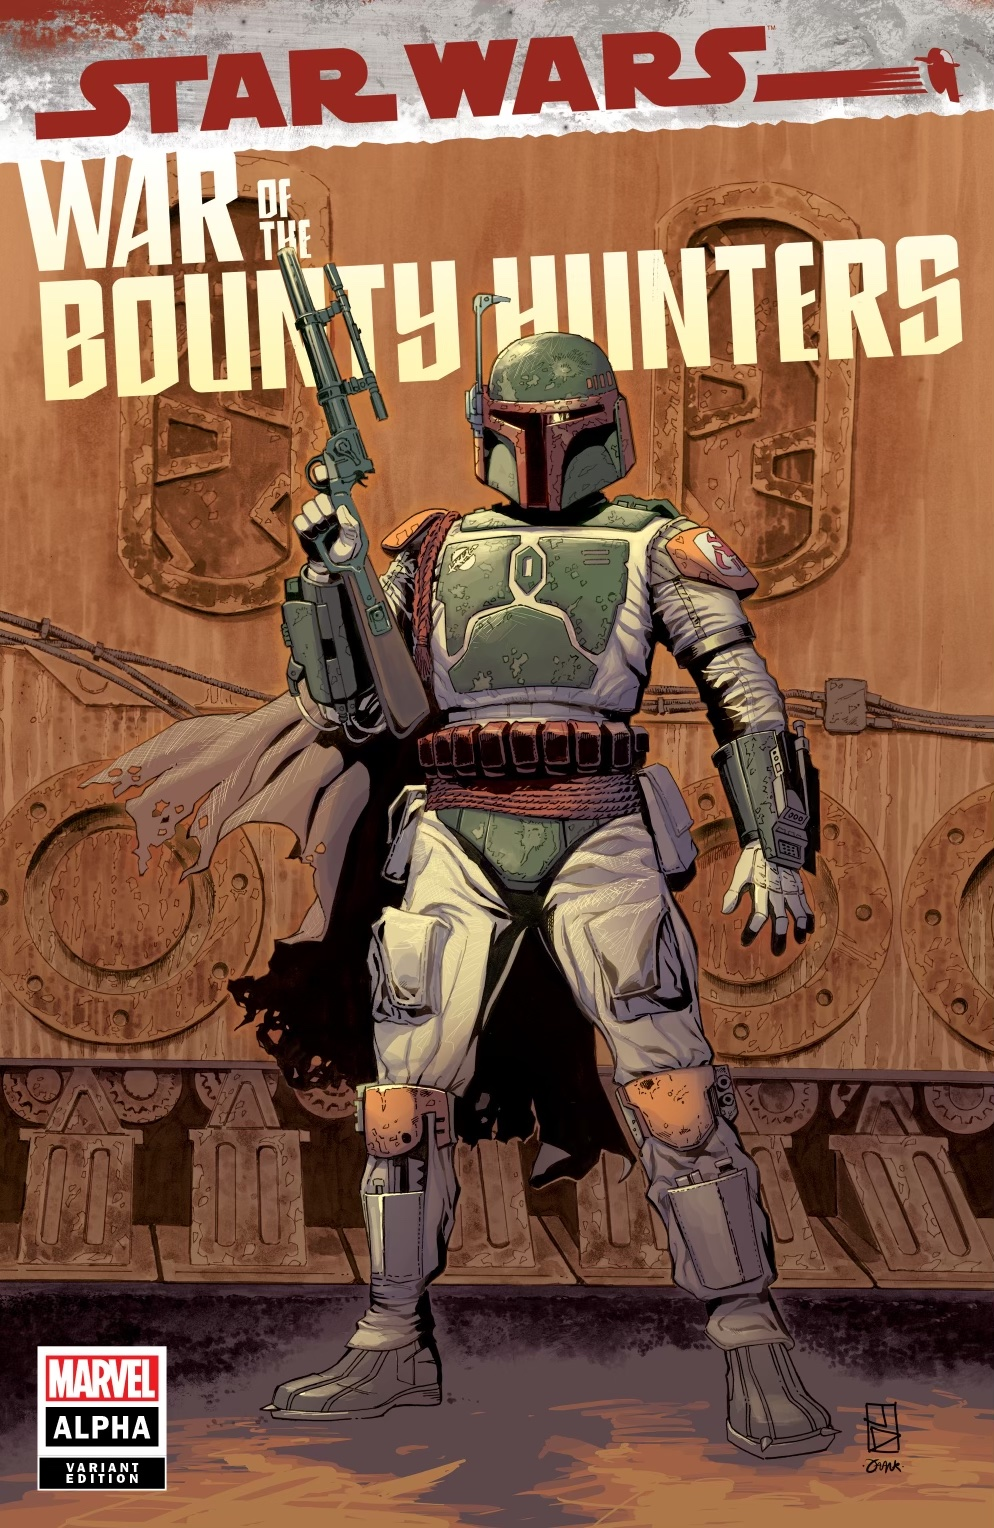 Star Wars: War of the Bounty Hunters Alpha - Kowabunga Comics Variant